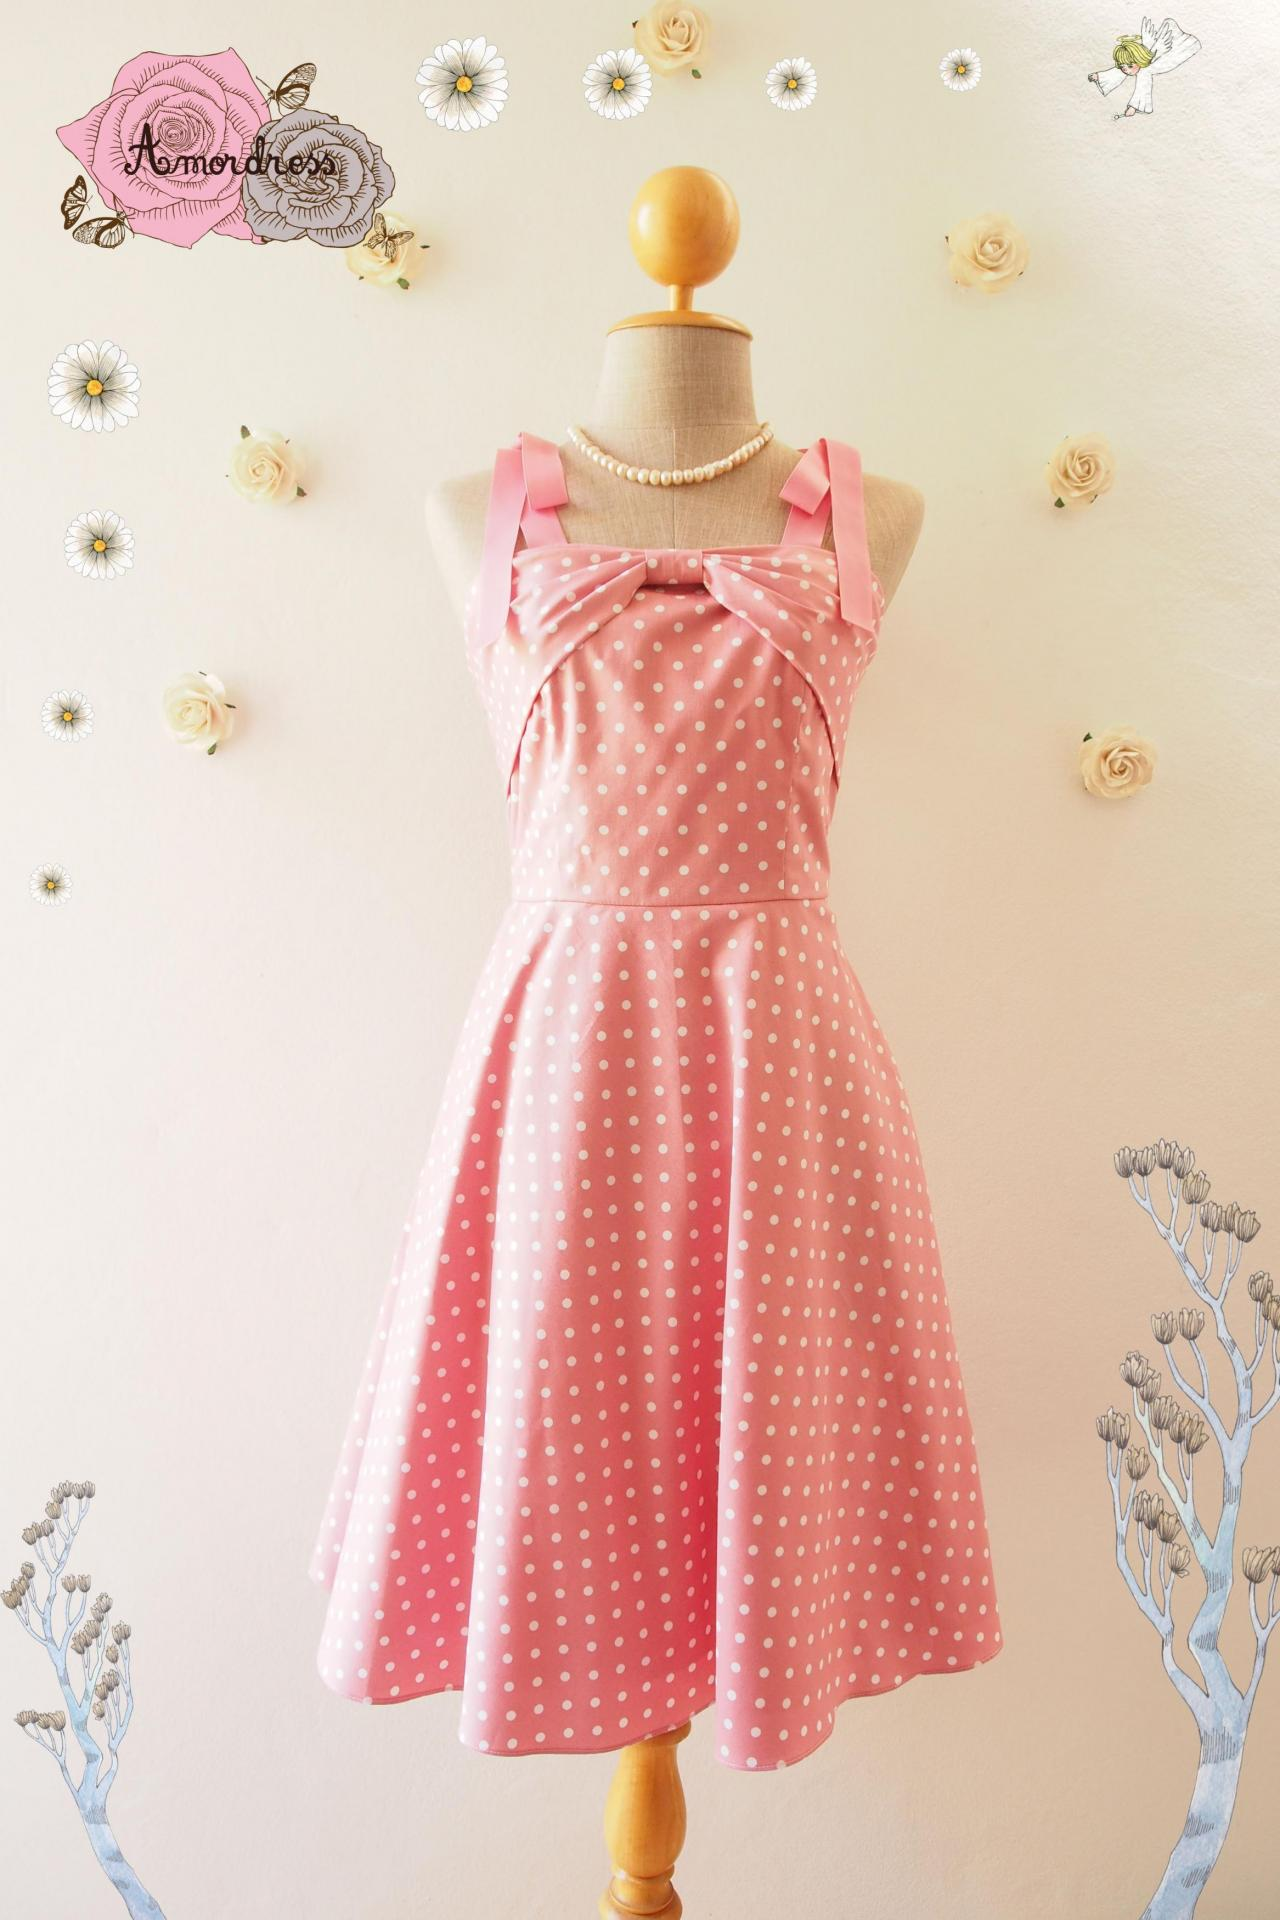 Candy Party Pink Summer Dress Polka Dot Retro Dress Vintage Style Dress Pink Swing Dress Tea Party Dress- Size XS-XL